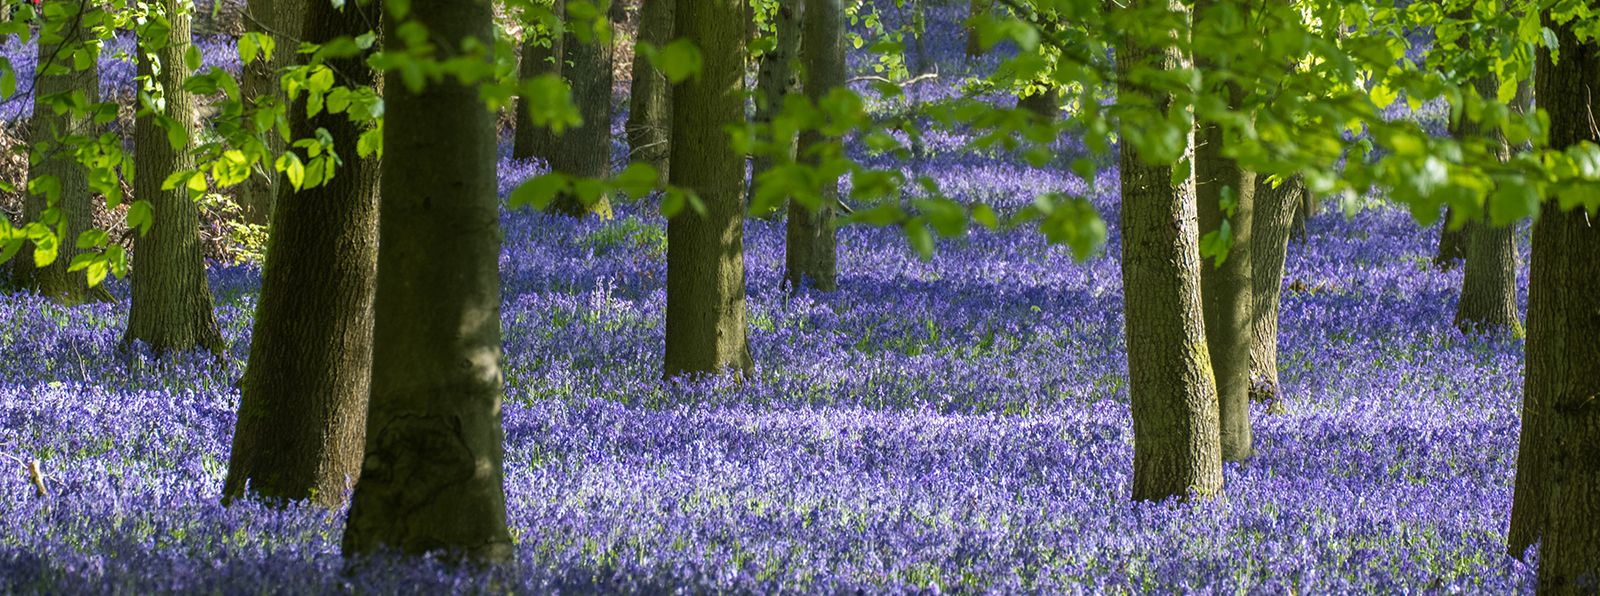 Bluebell-Woods-Near-Me-Chichester-Sussex